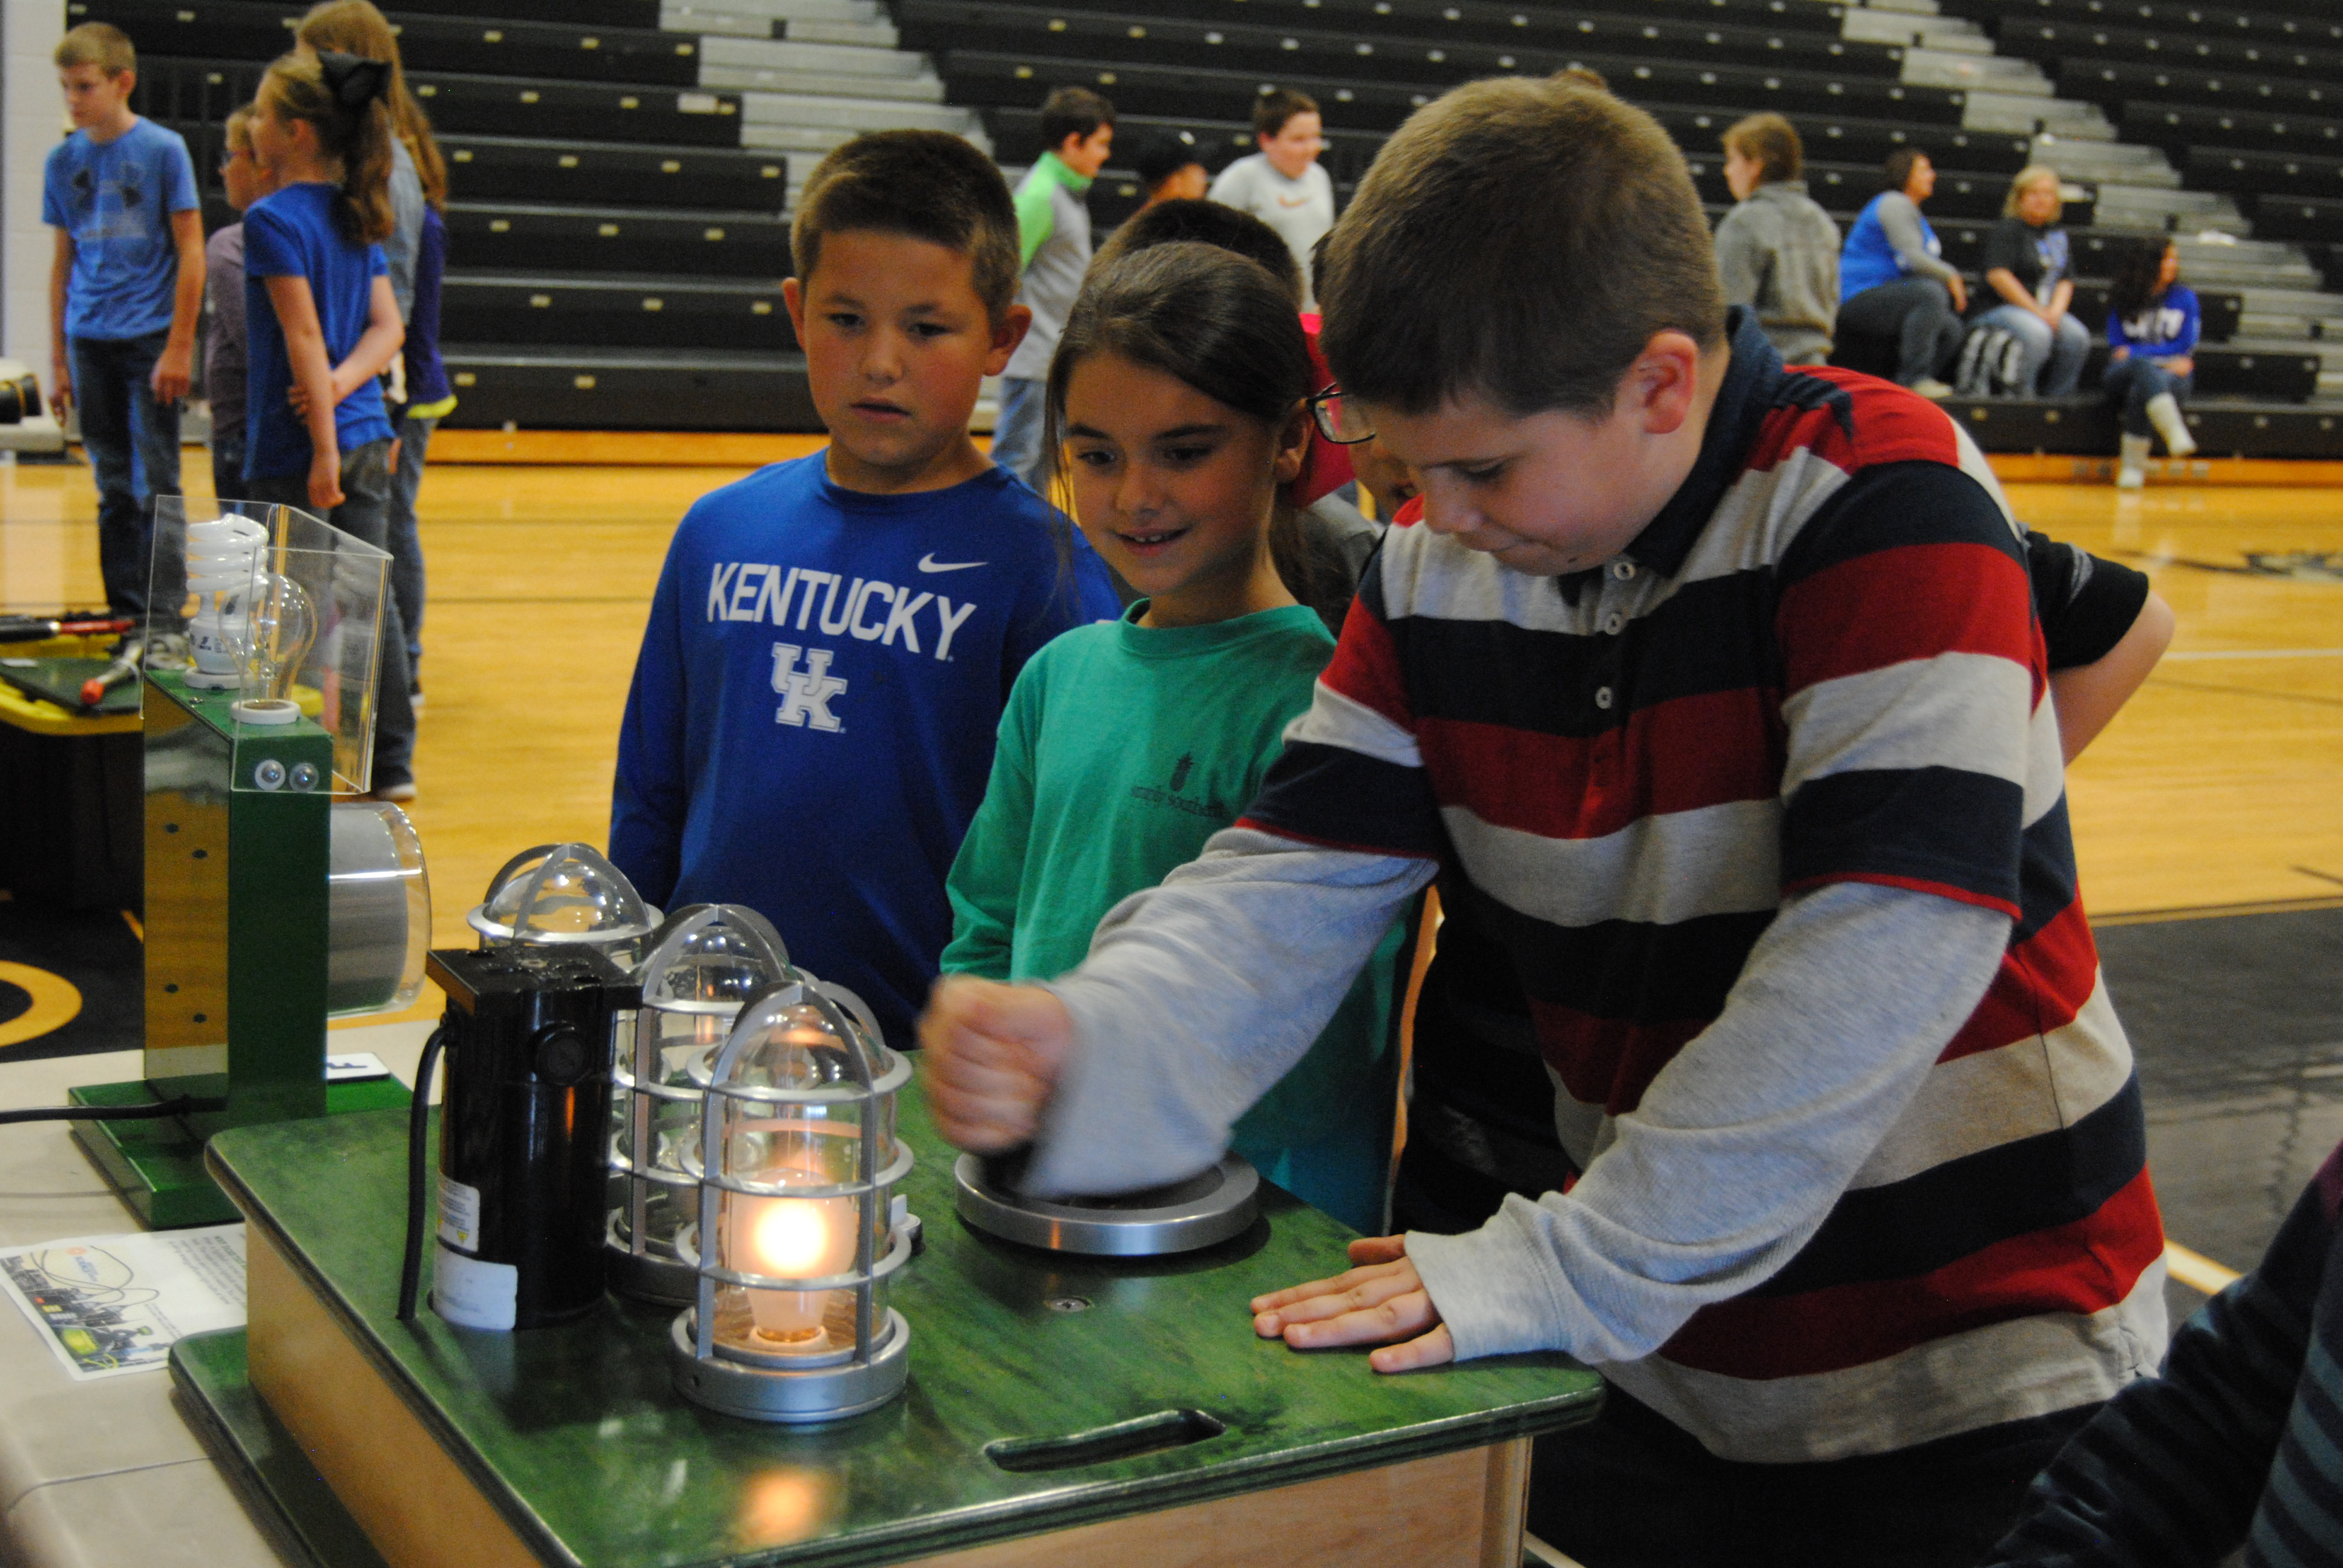 Students learn about electricity consumption from Captain Current